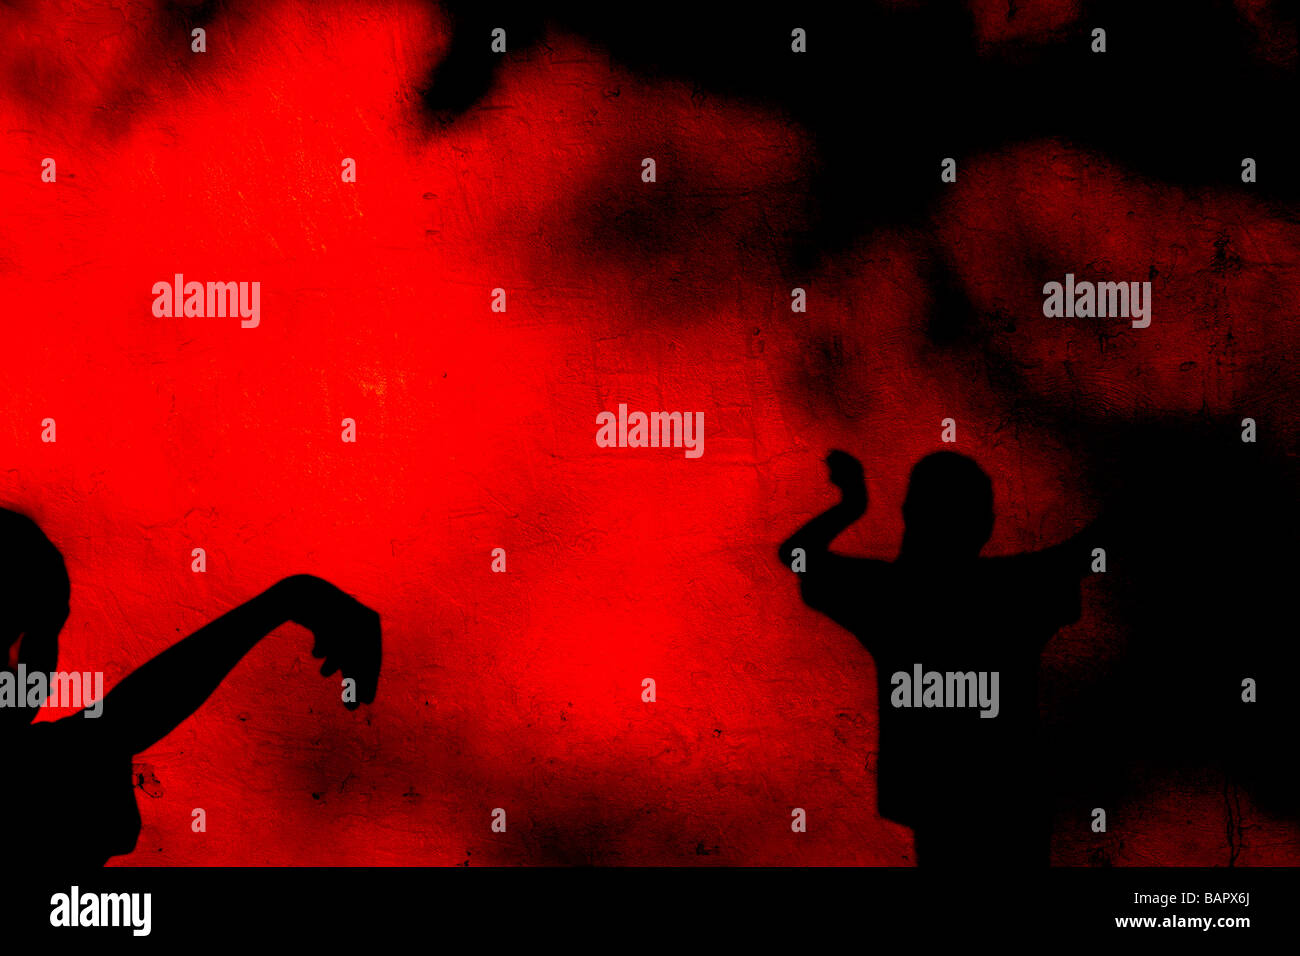 Children casting shadows on a rough red wall - Stock Image